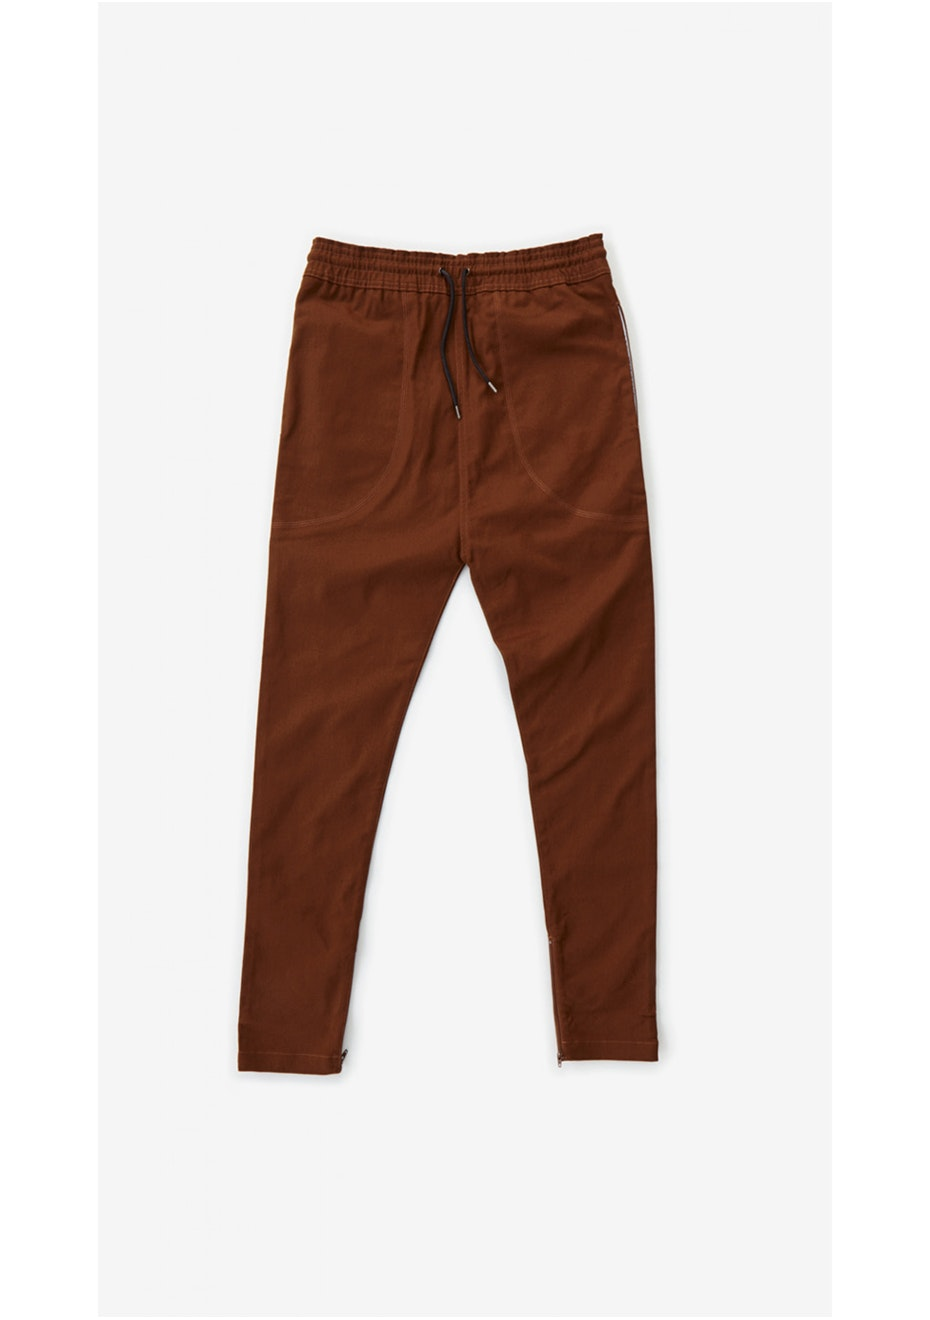 I Love Ugly - Zespy Pant Burnt Orange